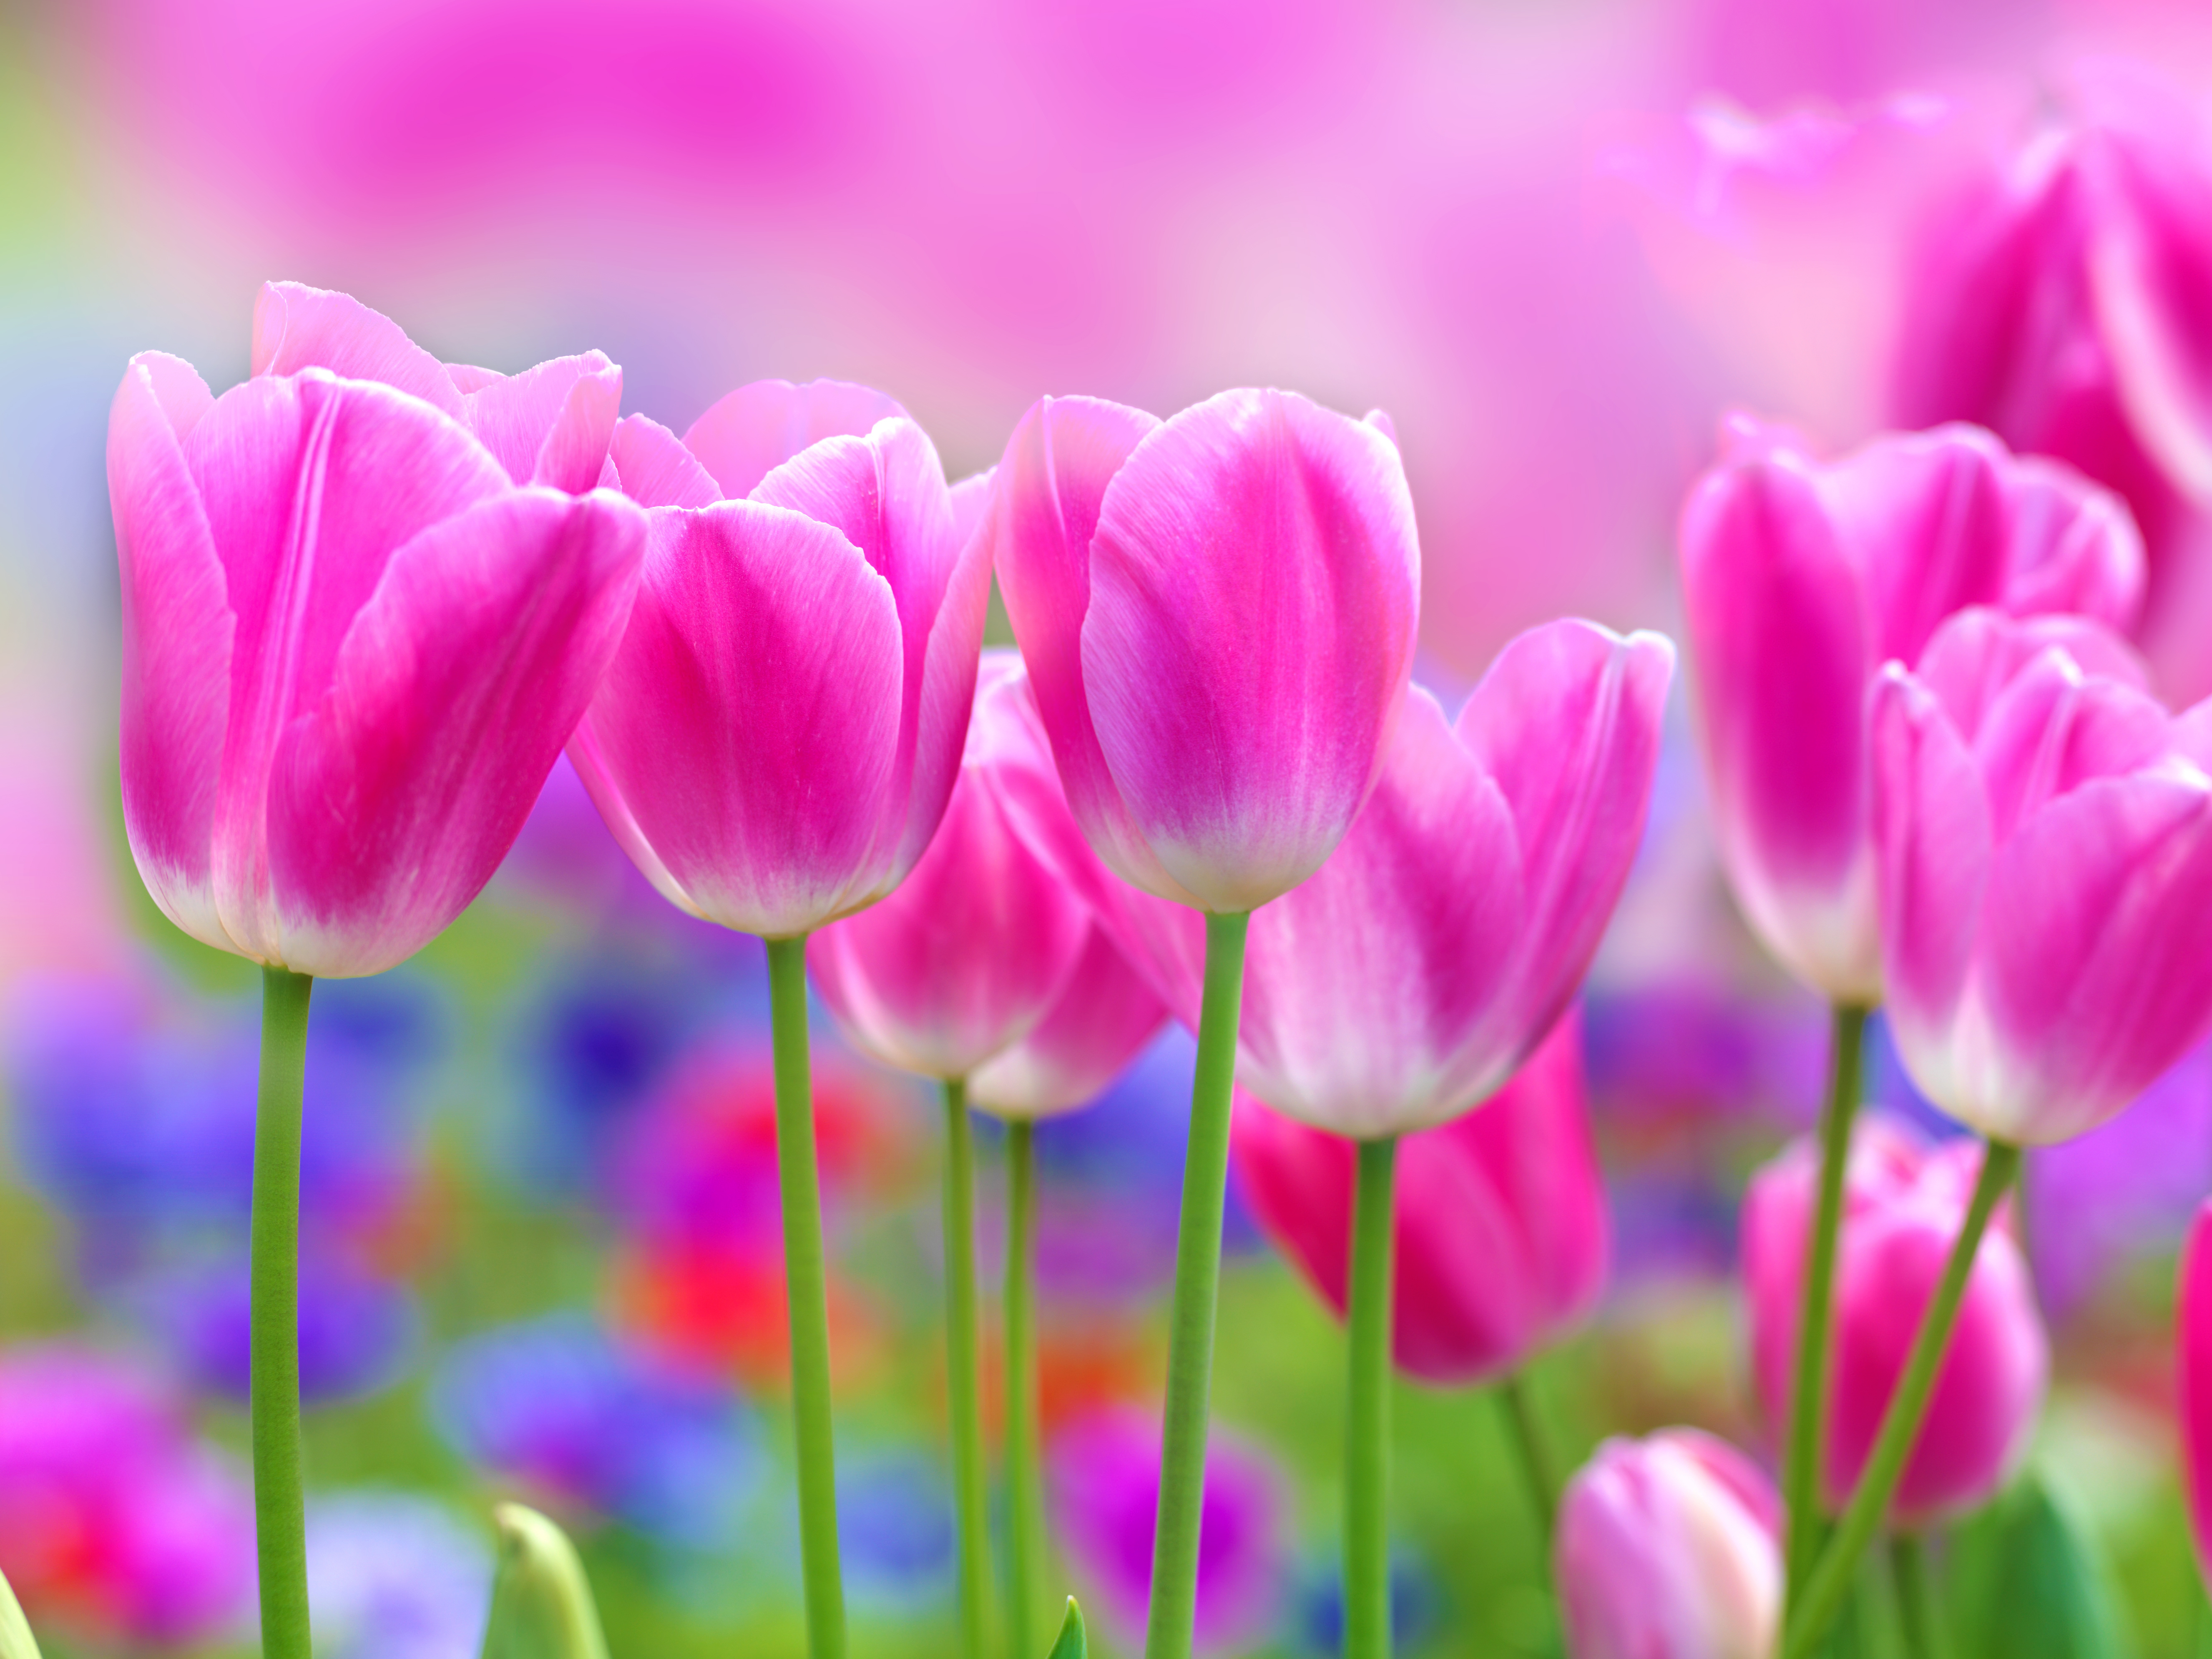 pink tulips in a tulip field selective focus used photography 5304x3978